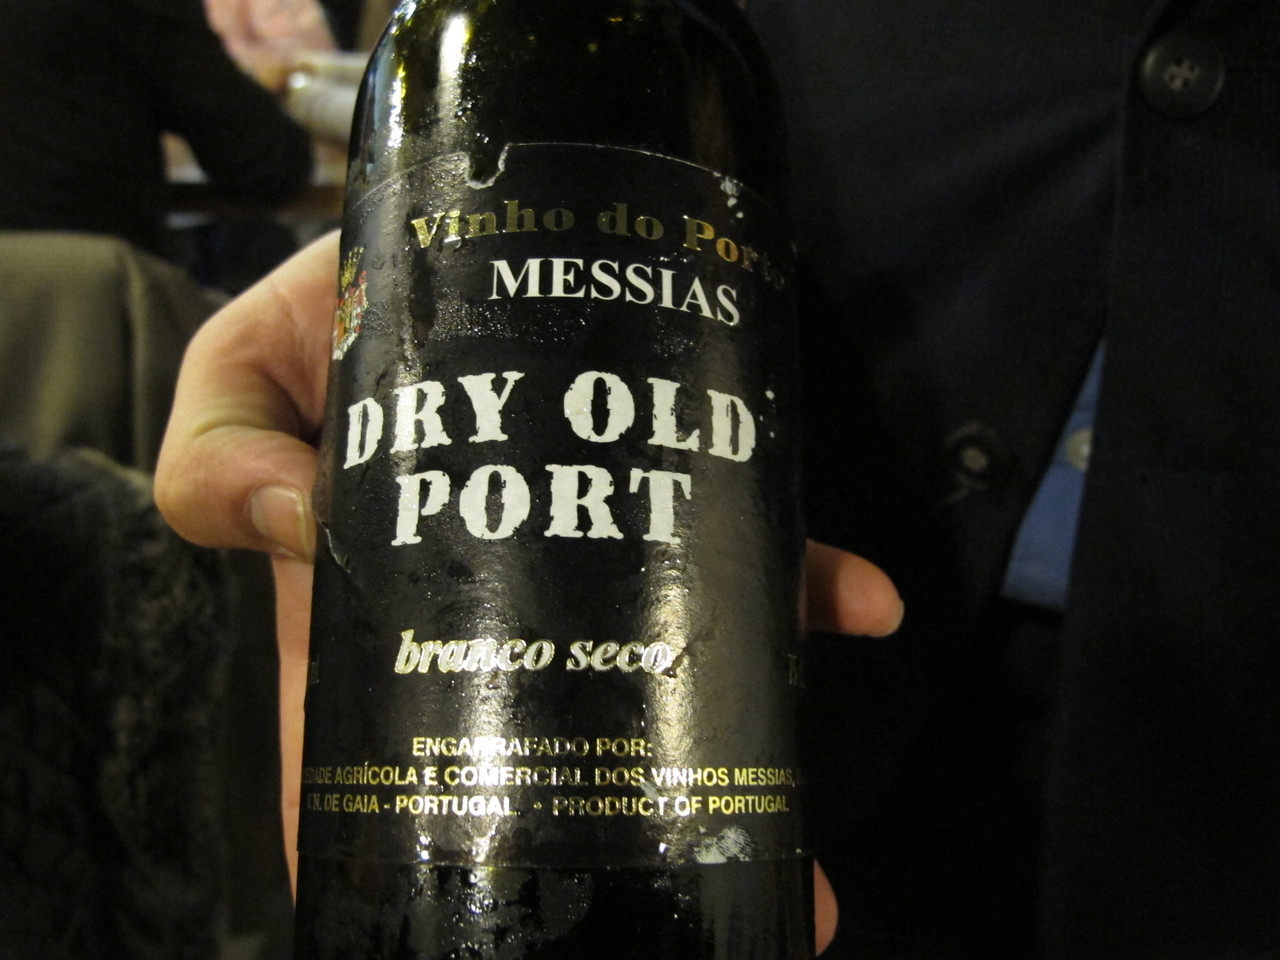 Messias Dry Old Port .JPG